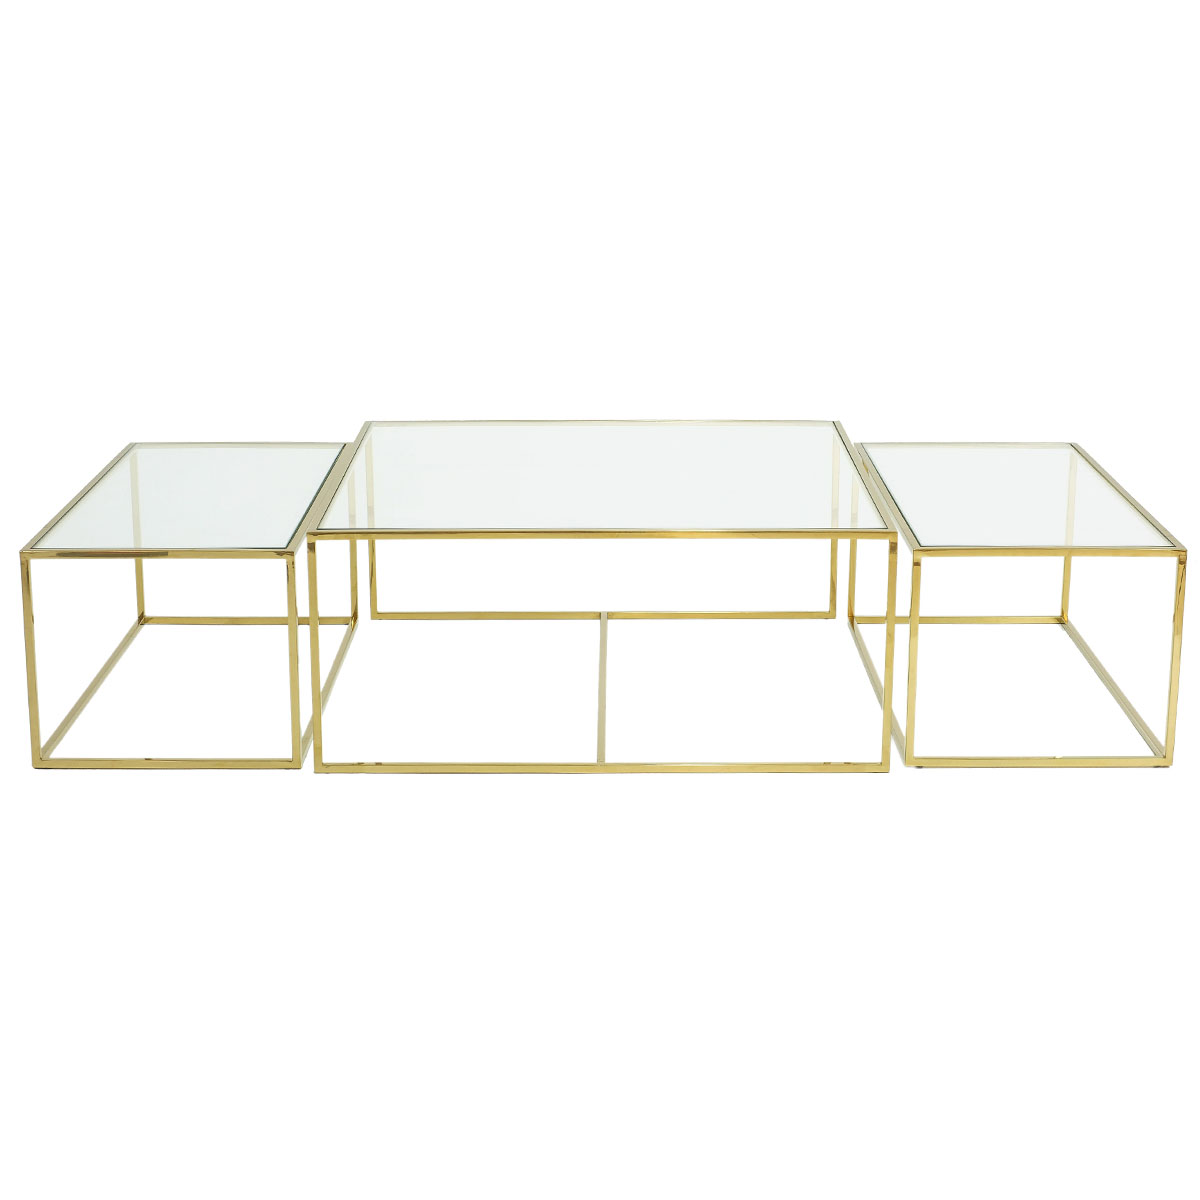 Three Set Table – Large